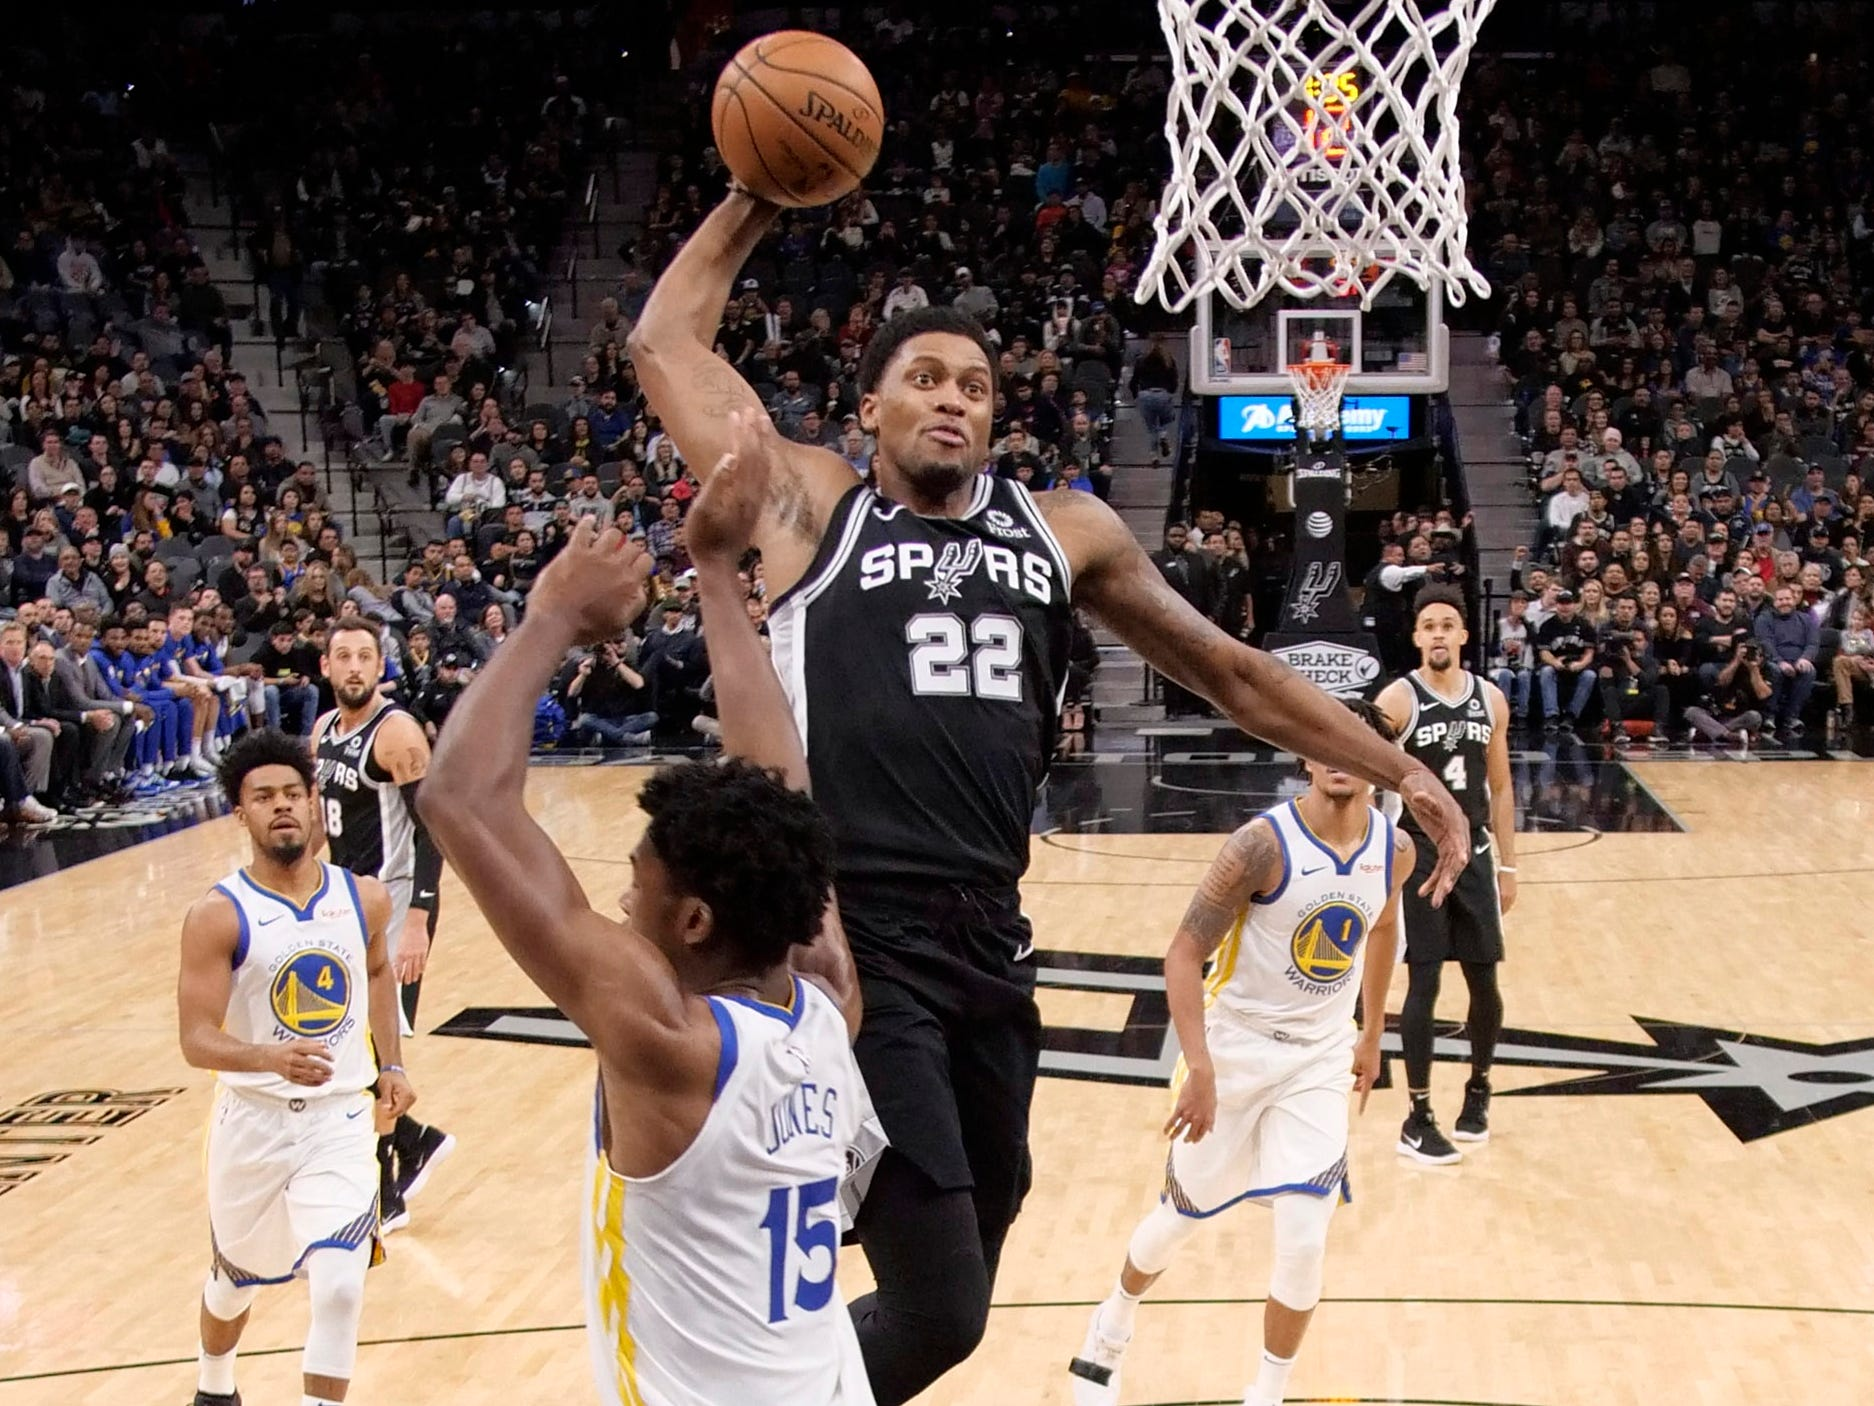 Nov. 18: Spurs forward Rudy Gay (22) rises up for the ferocious one-handed flush over Warriors center Damian Jones (15) during the first half in San Antonio.